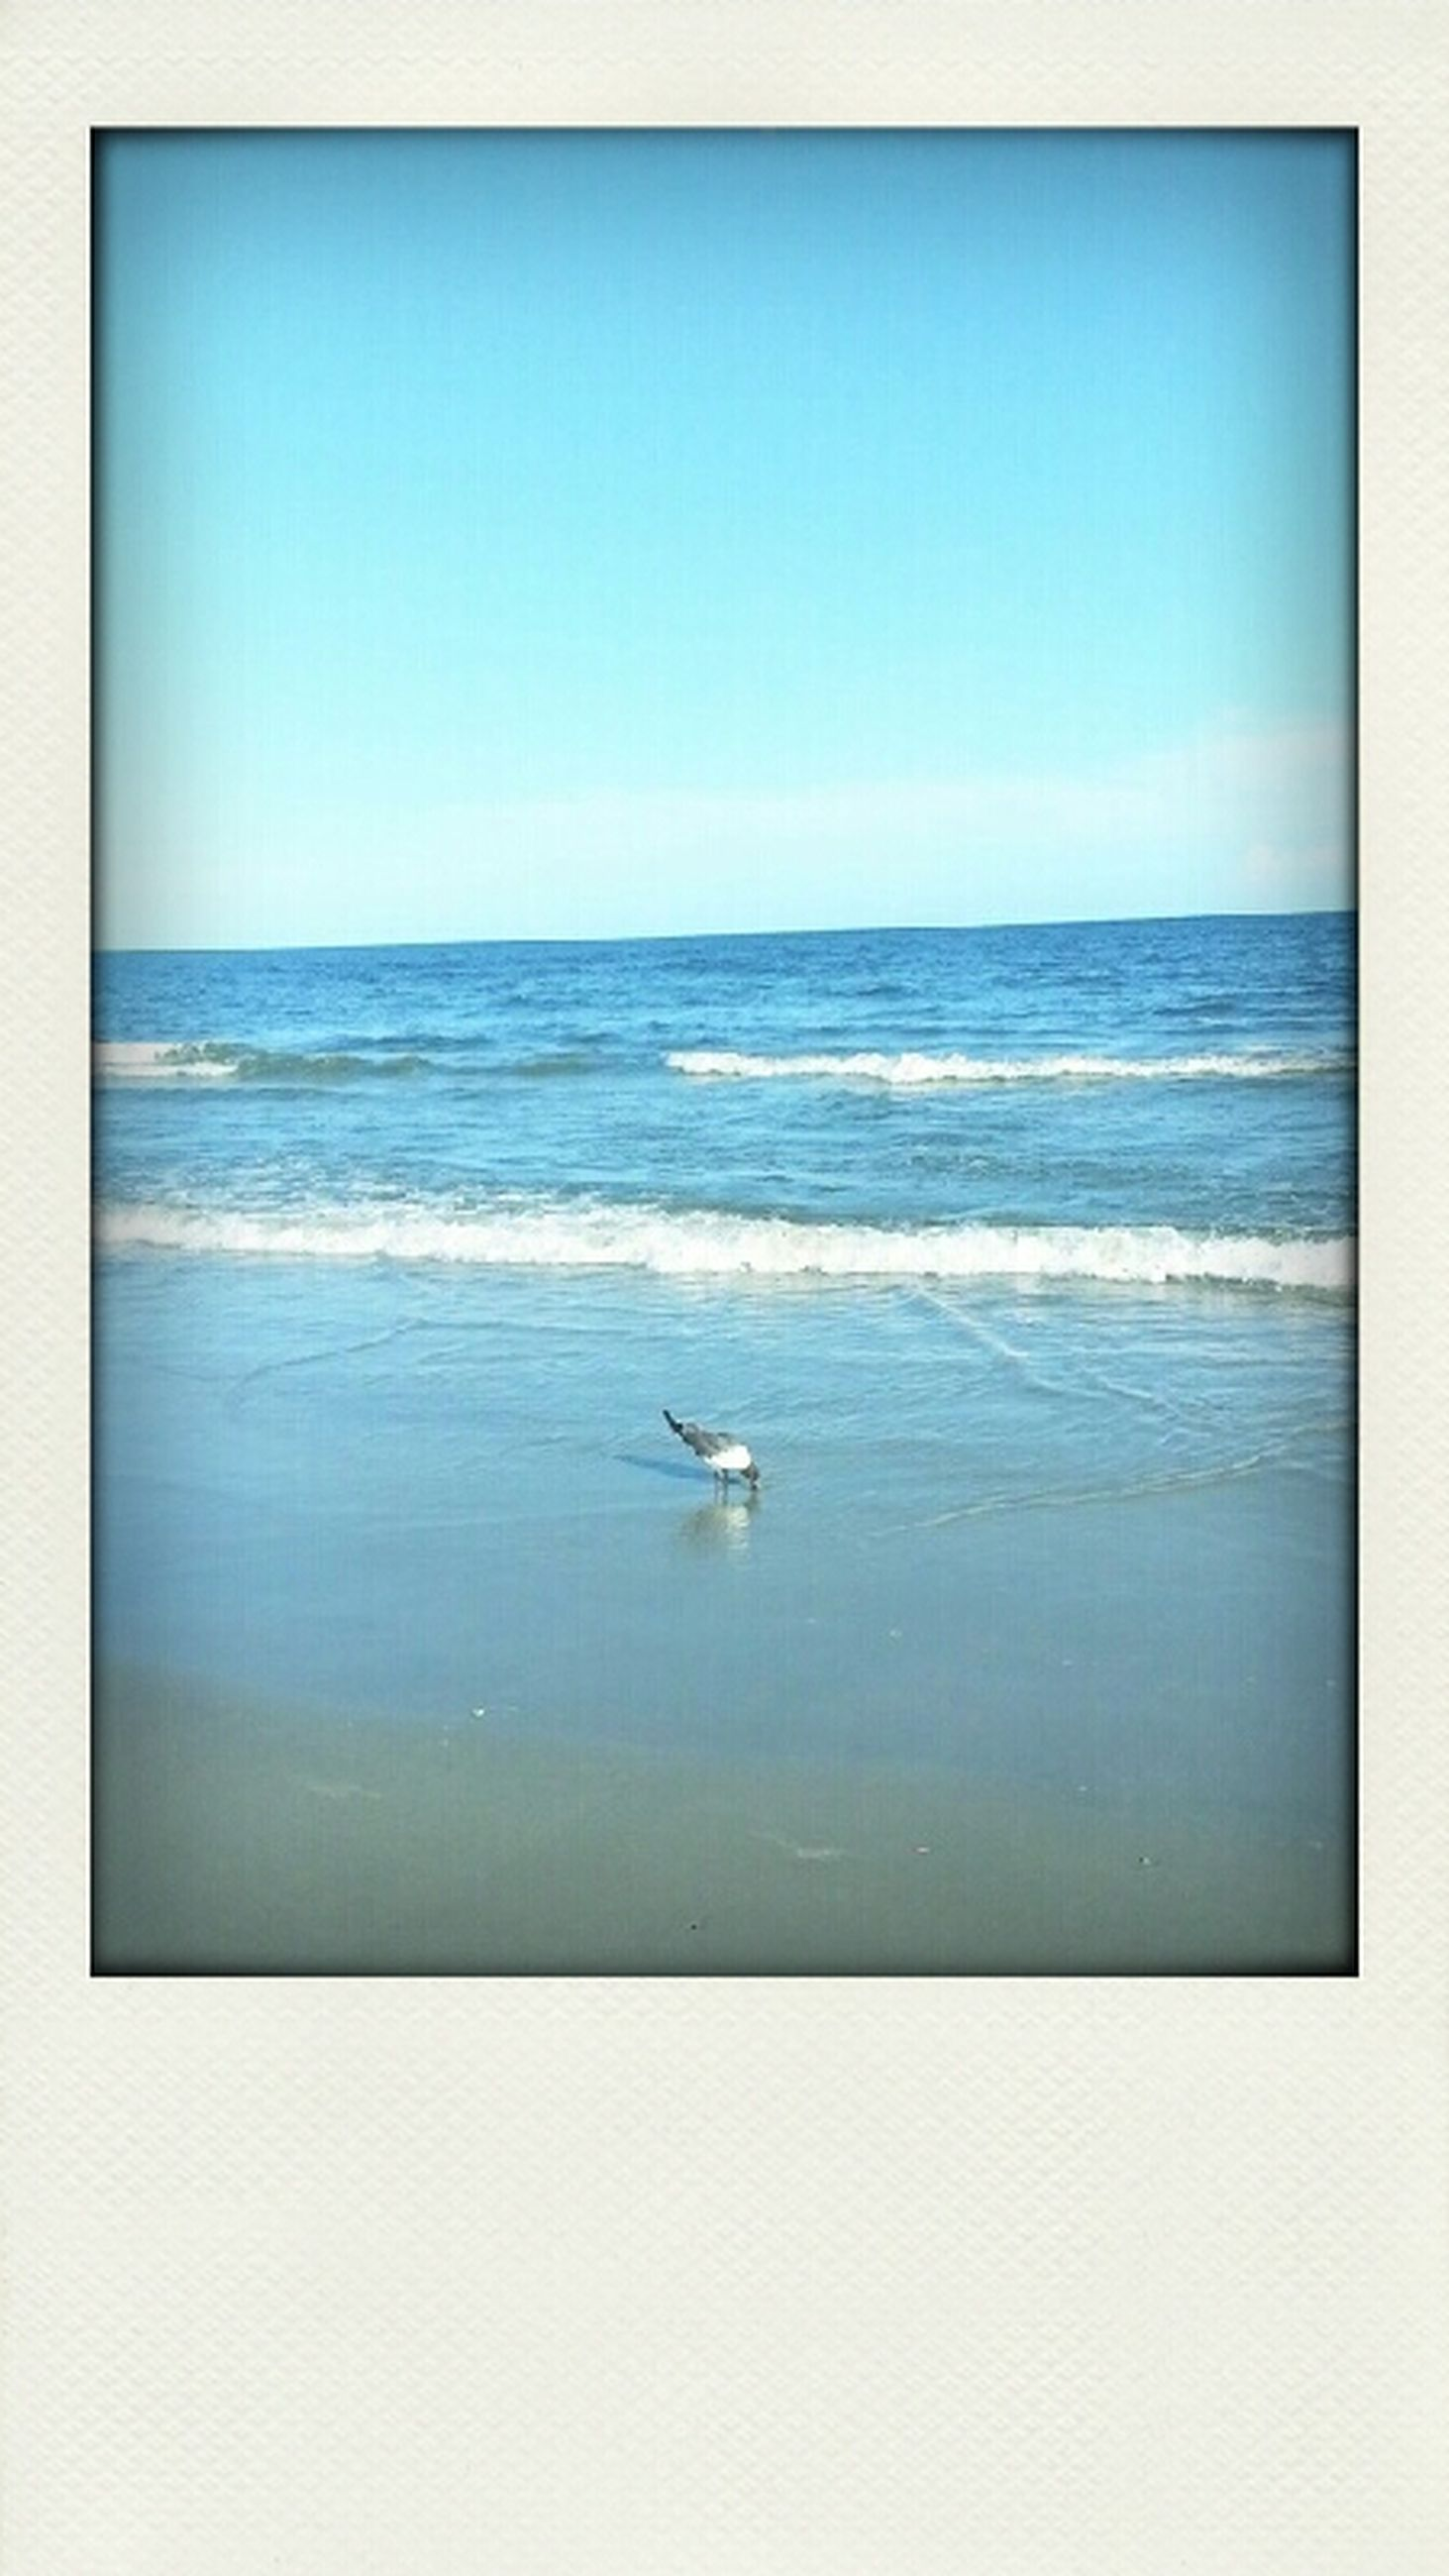 sea, water, transfer print, bird, animal themes, horizon over water, wildlife, animals in the wild, copy space, clear sky, auto post production filter, one animal, flying, nature, tranquil scene, blue, beauty in nature, tranquility, scenics, seagull